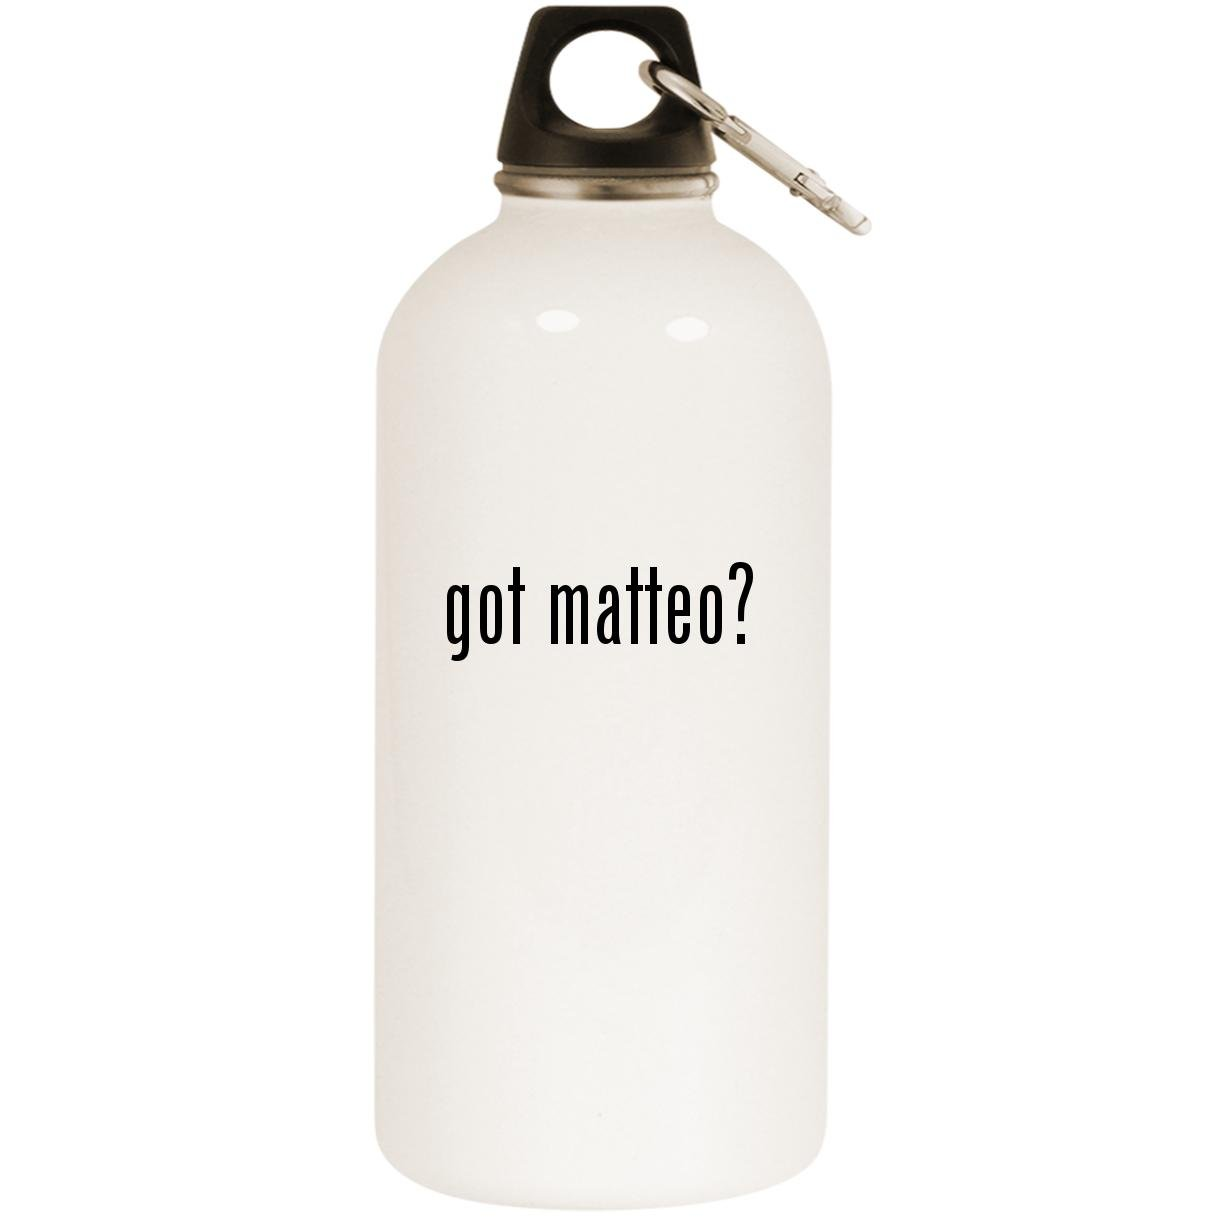 got matteo? - White 20oz Stainless Steel Water Bottle with Carabiner by Molandra Products (Image #1)